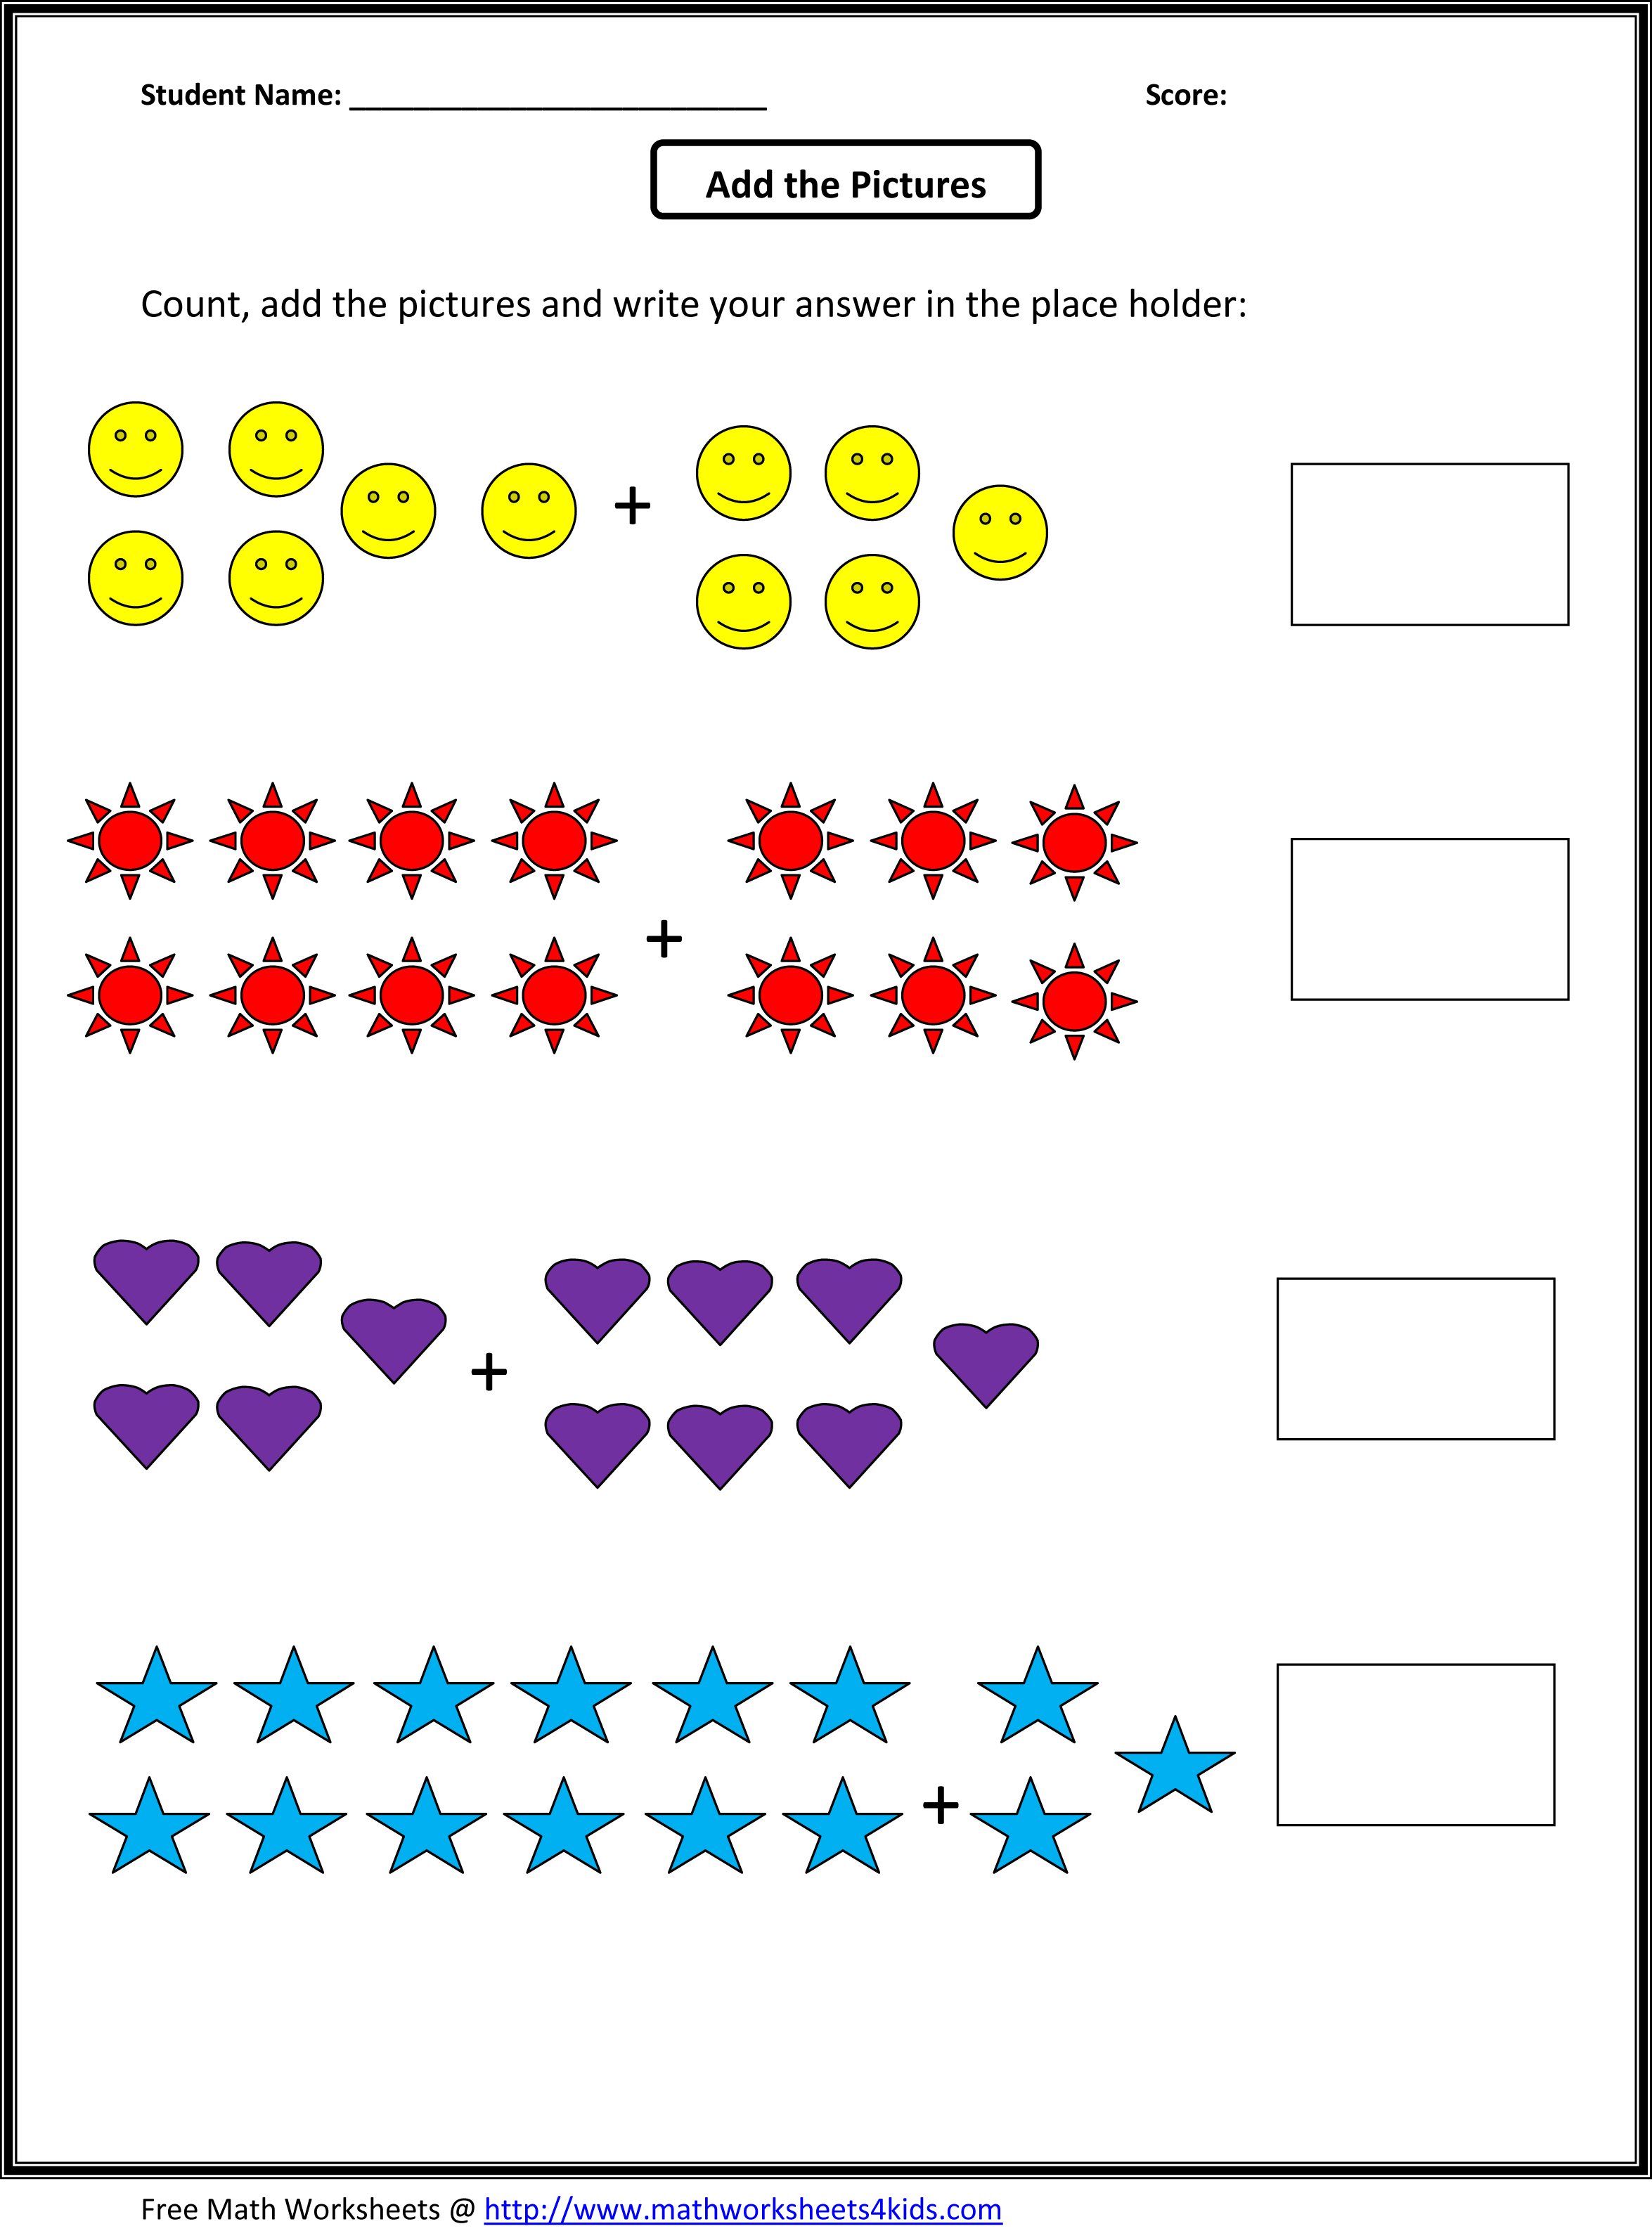 Weirdmailus  Terrific Grade  Maths Worksheet  Reocurent With Inspiring Math Worksheets For St Grade Free  Reocurent With Endearing Kids Math Worksheet Also Social Studies Maps Worksheets In Addition Customary Length Worksheets And Find The Median Worksheet As Well As Printables Worksheets Additionally Present Participle Worksheet From Reocurentcom With Weirdmailus  Inspiring Grade  Maths Worksheet  Reocurent With Endearing Math Worksheets For St Grade Free  Reocurent And Terrific Kids Math Worksheet Also Social Studies Maps Worksheets In Addition Customary Length Worksheets From Reocurentcom